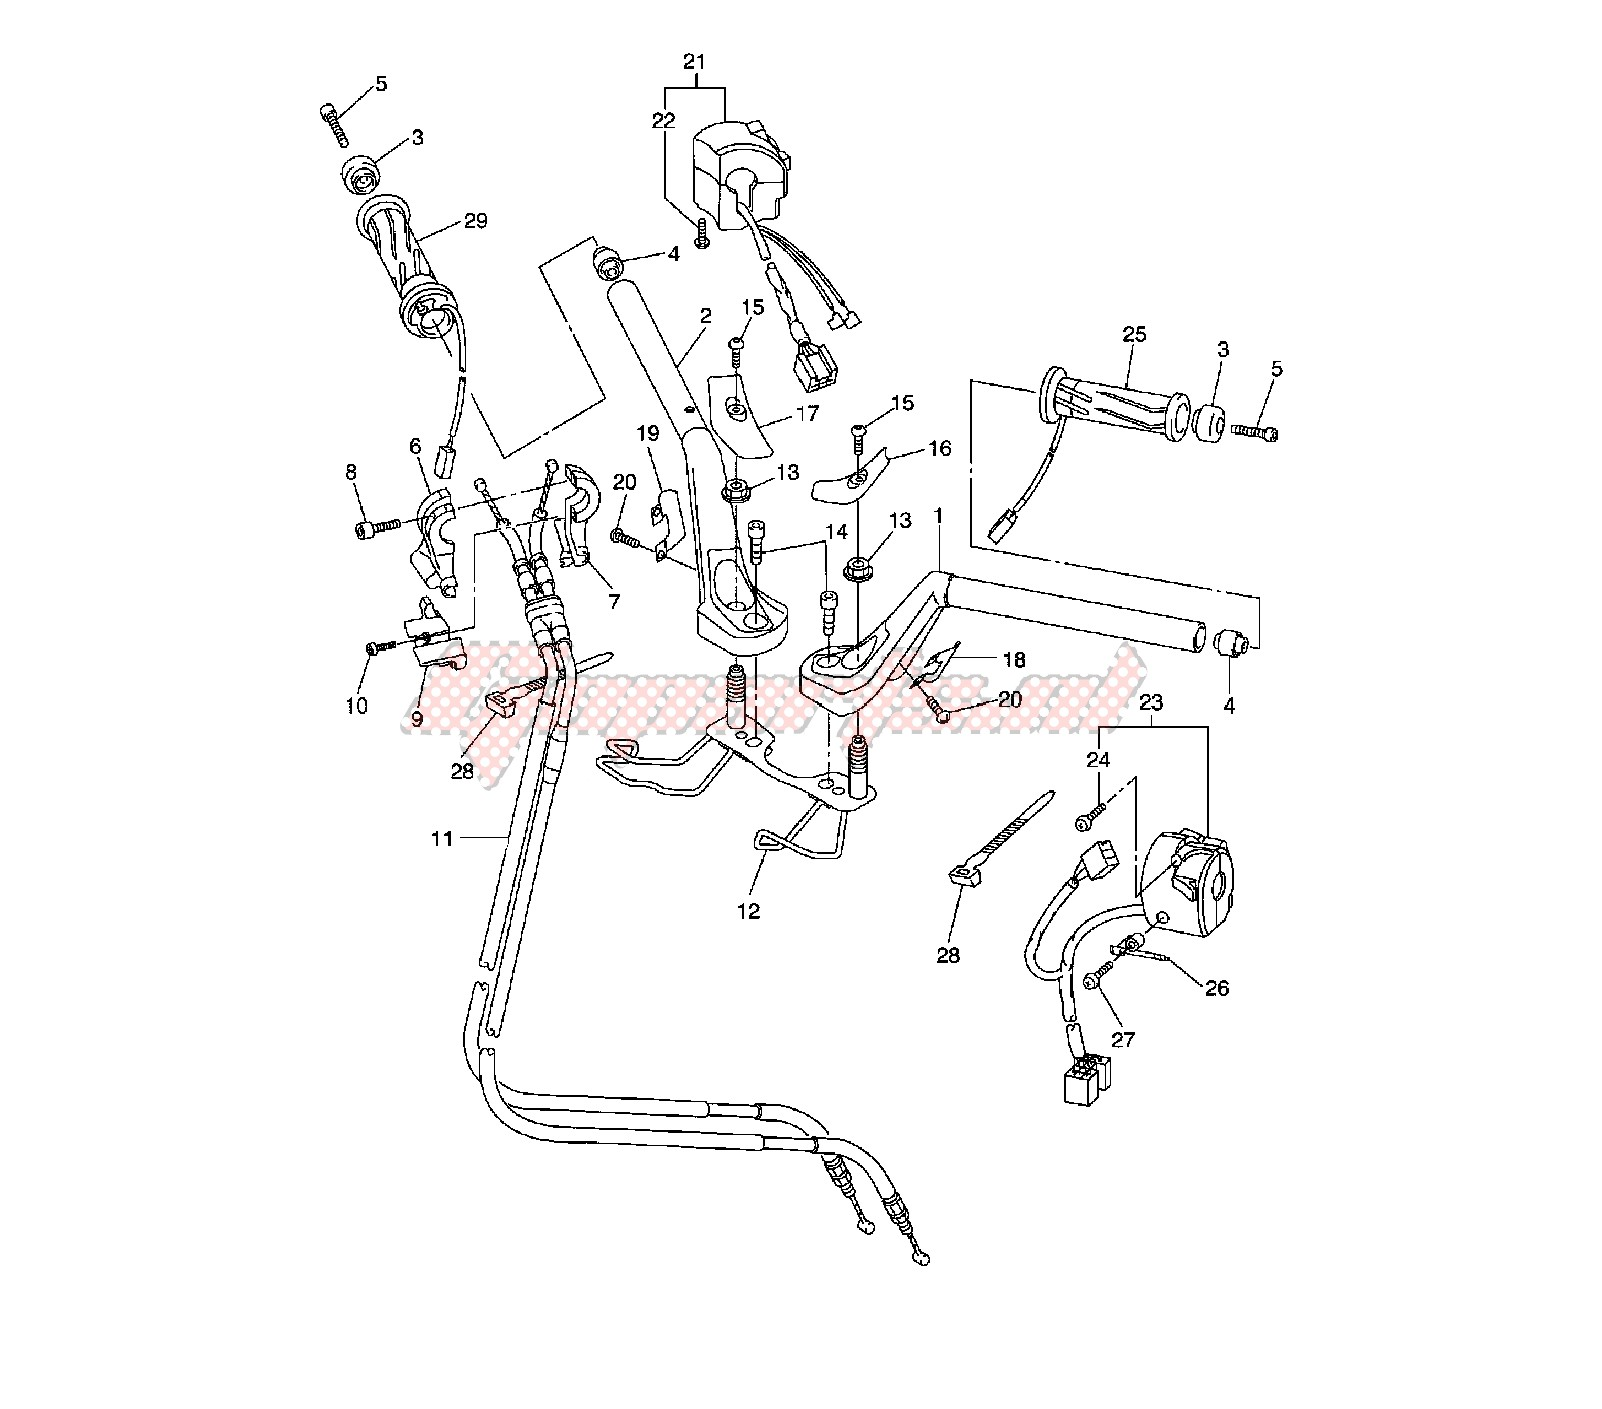 STEERING HANDLE AND CABLE blueprint